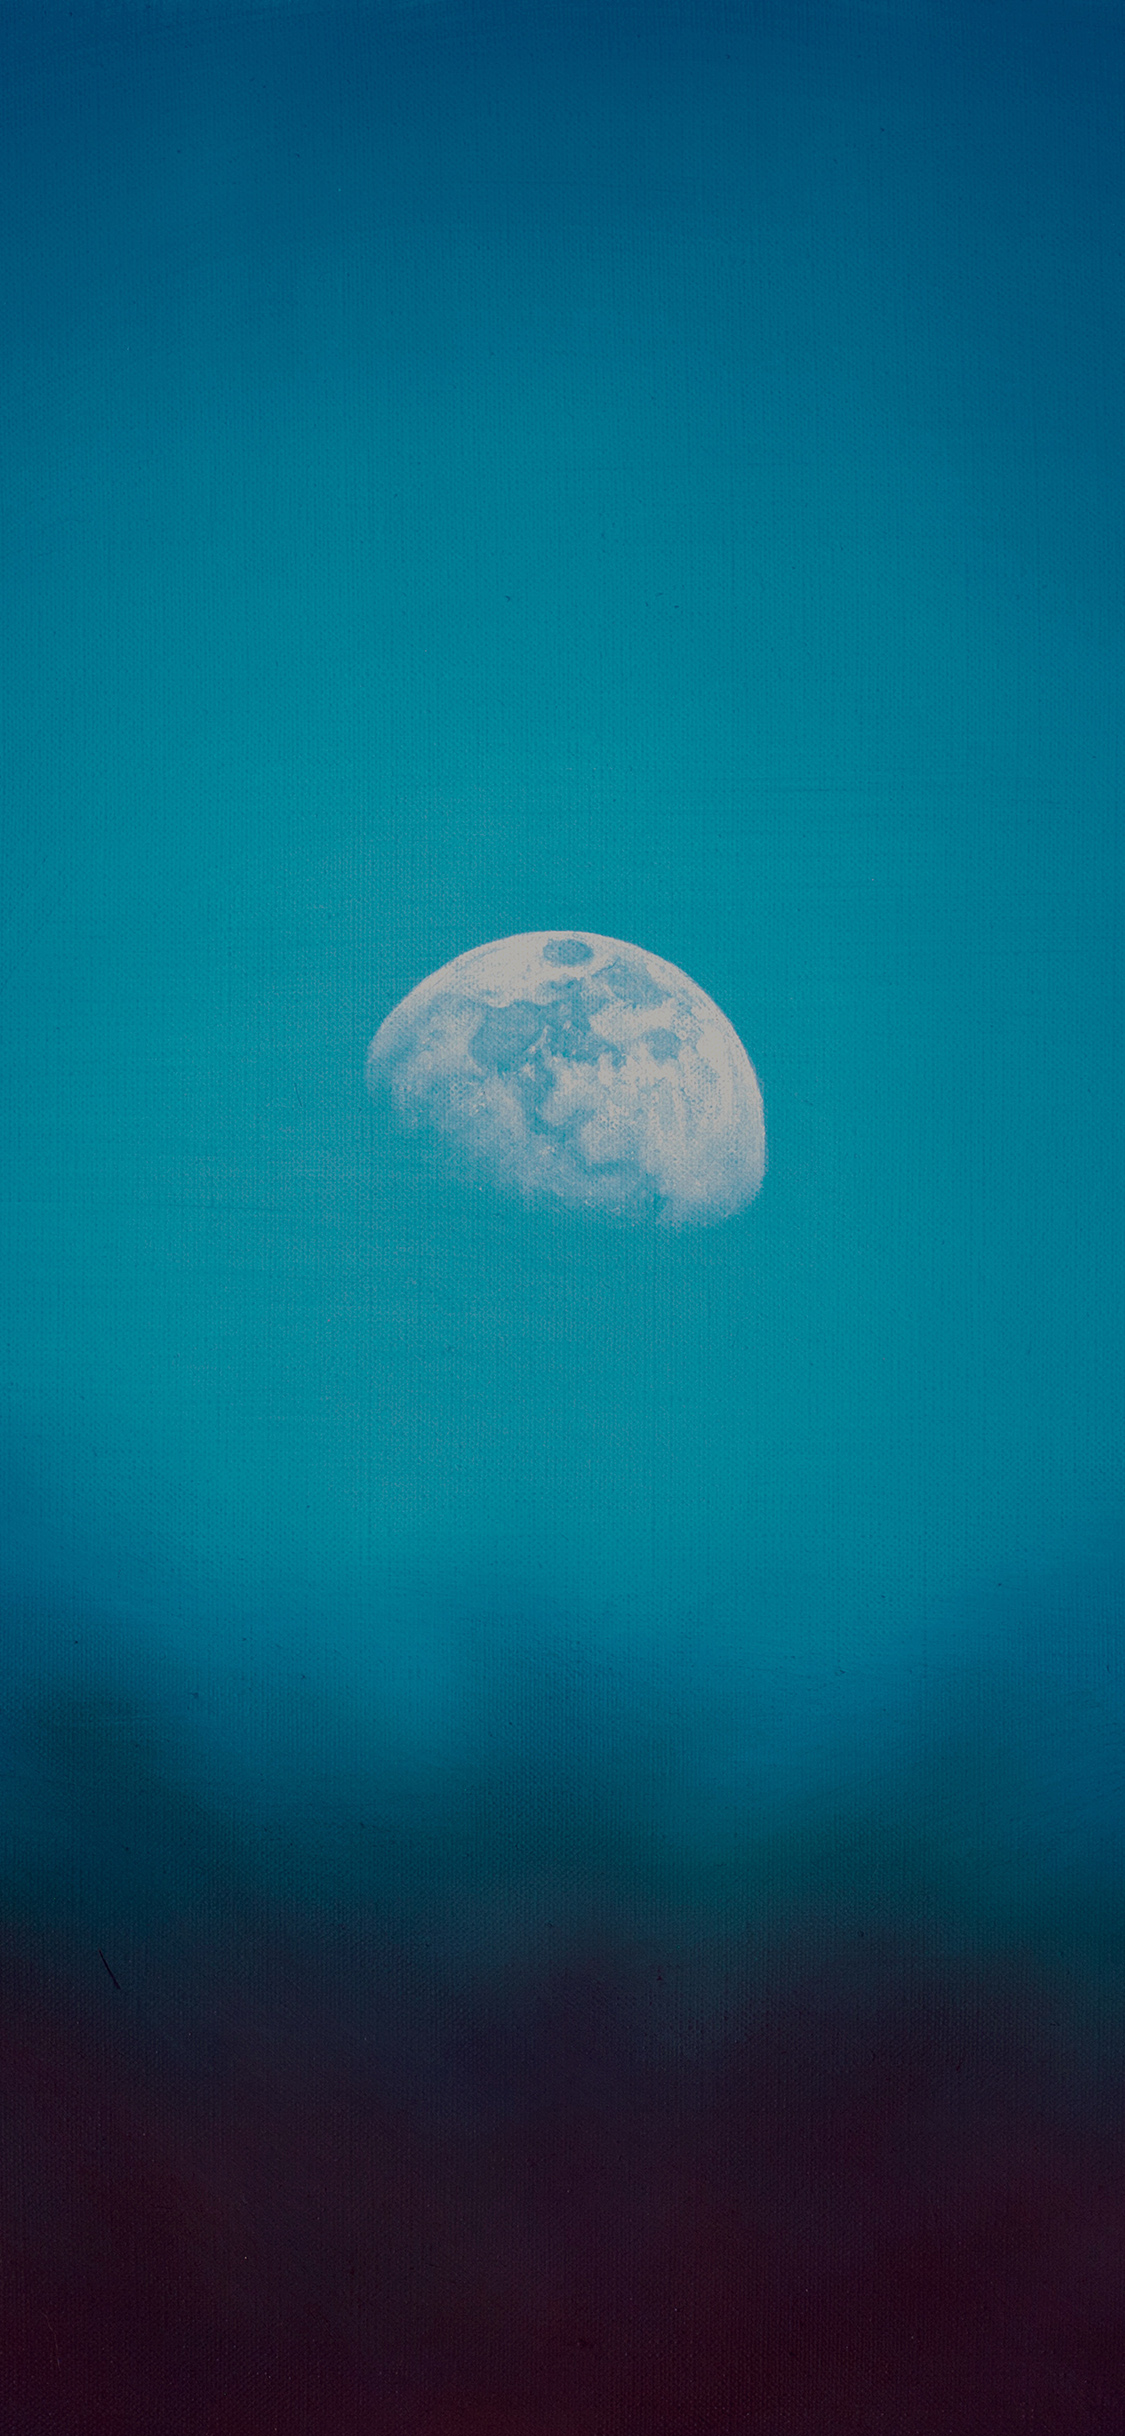 iPhoneXpapers.com-Apple-iPhone-wallpaper-mt02-moon-rise-day-nature-blue-dark-night-green